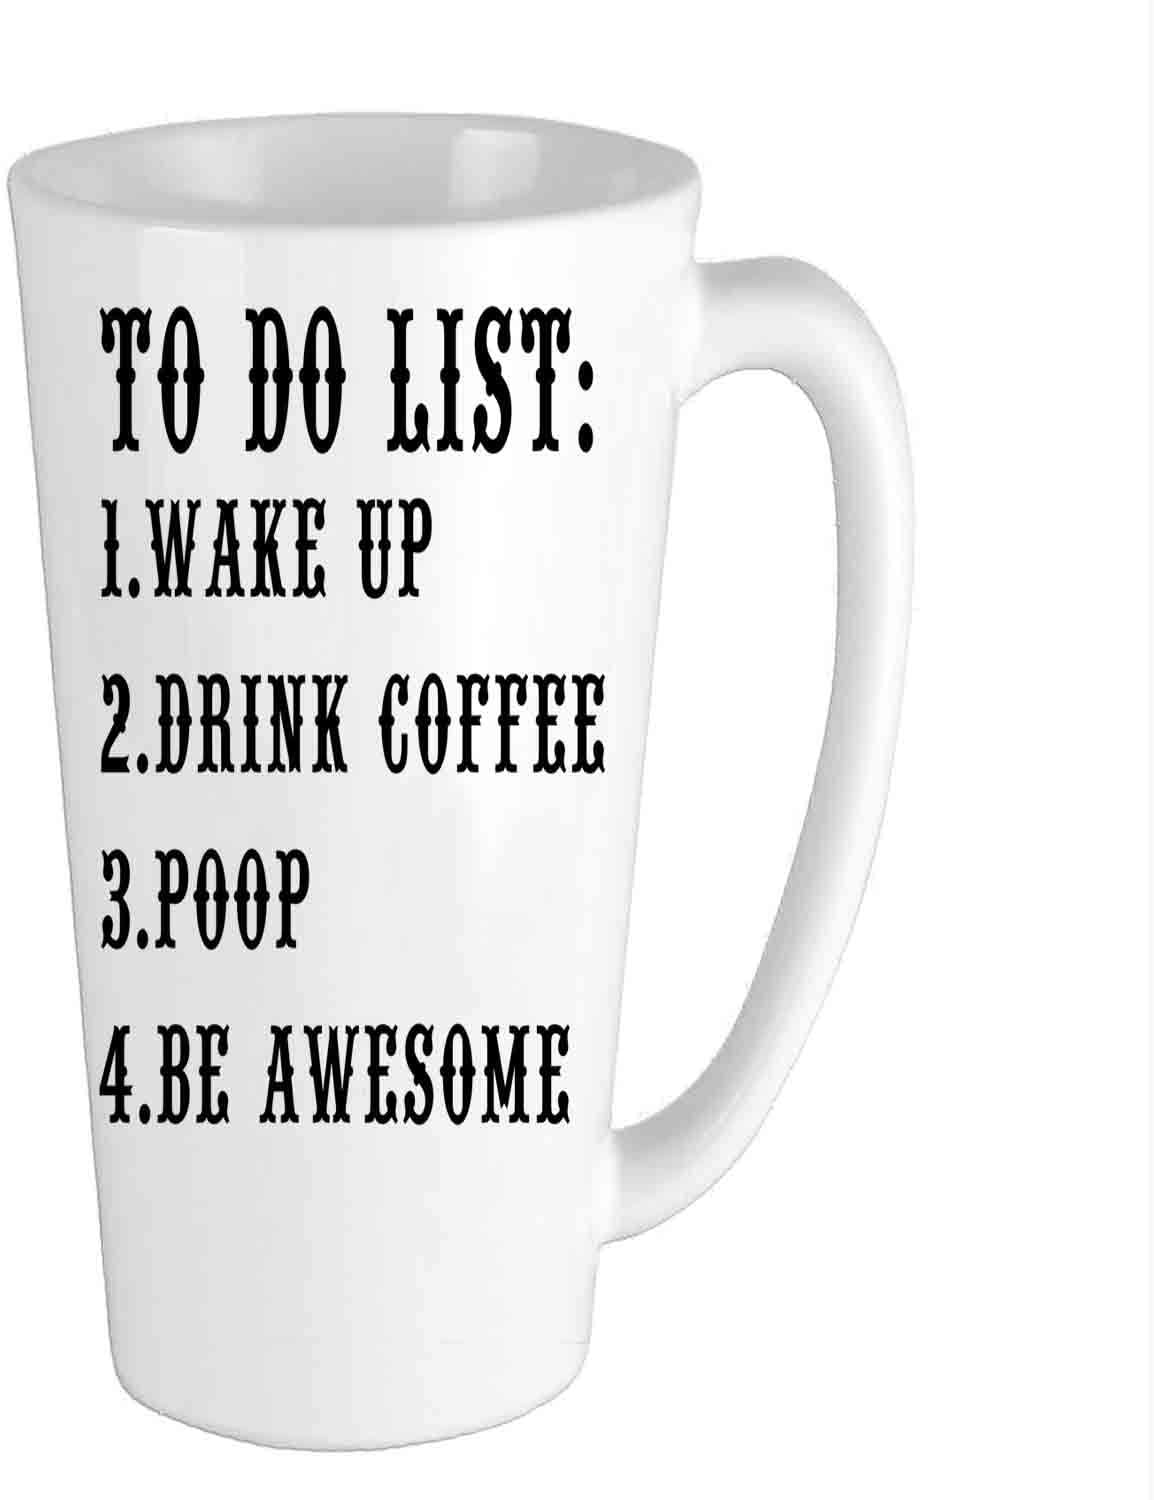 To Do List Wake Up Drink Poop Be Awesome, Funny Coffee Mug best gifts for friends-3- Creative Mug, Coffee Cup - 16 oz.